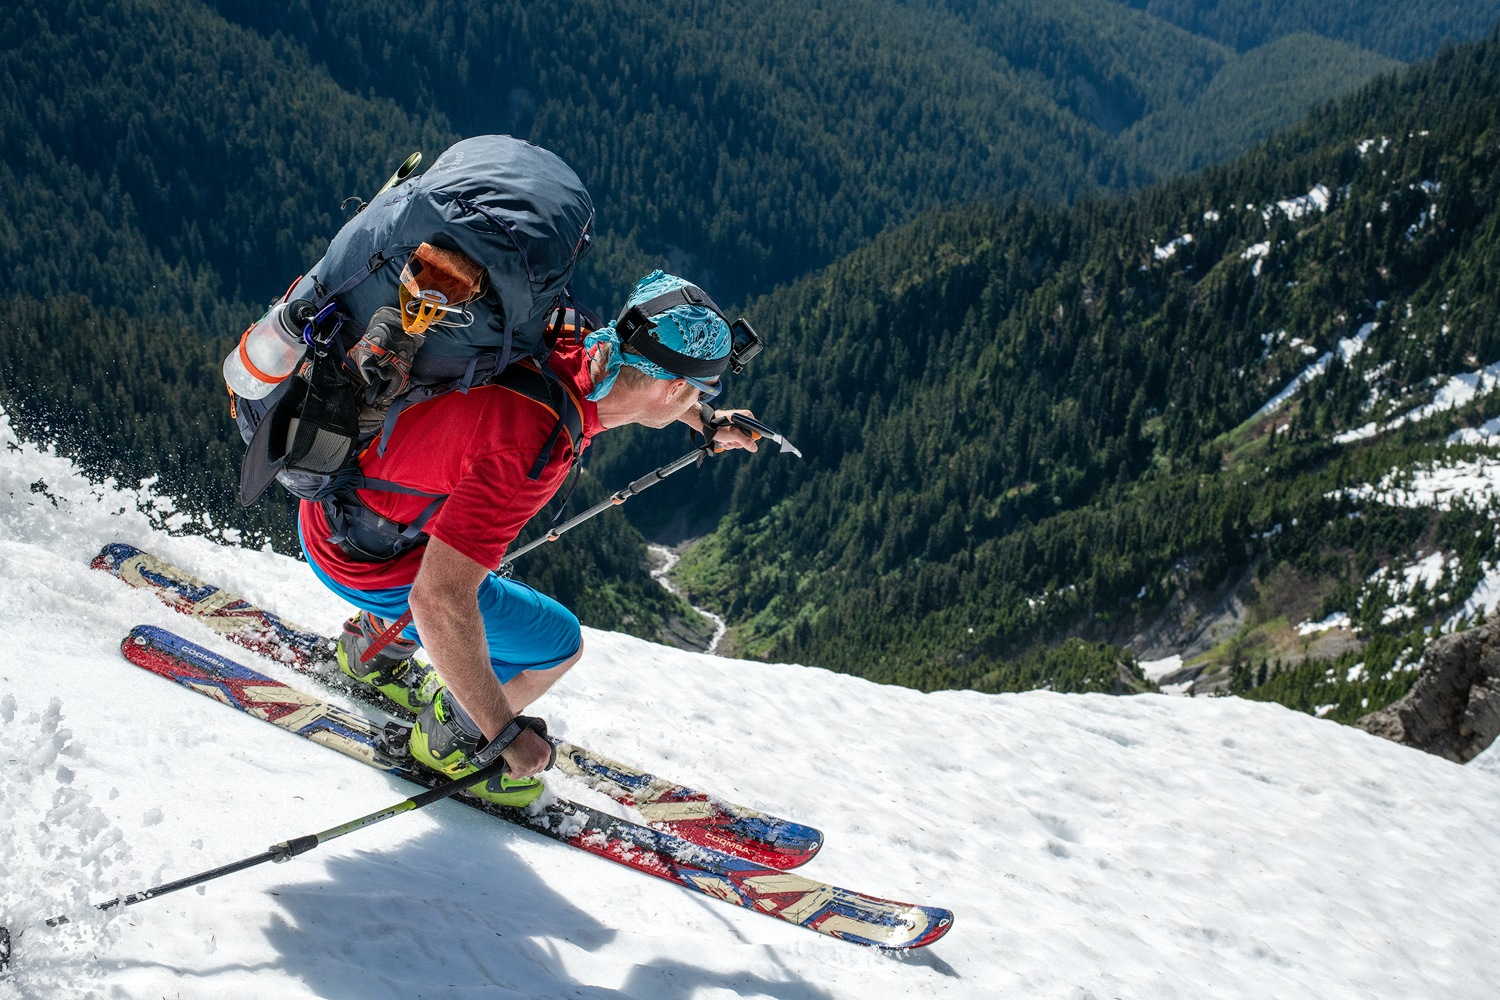 A backcountry skier makes turns down a glacier in Washington's Olympic Peninsula